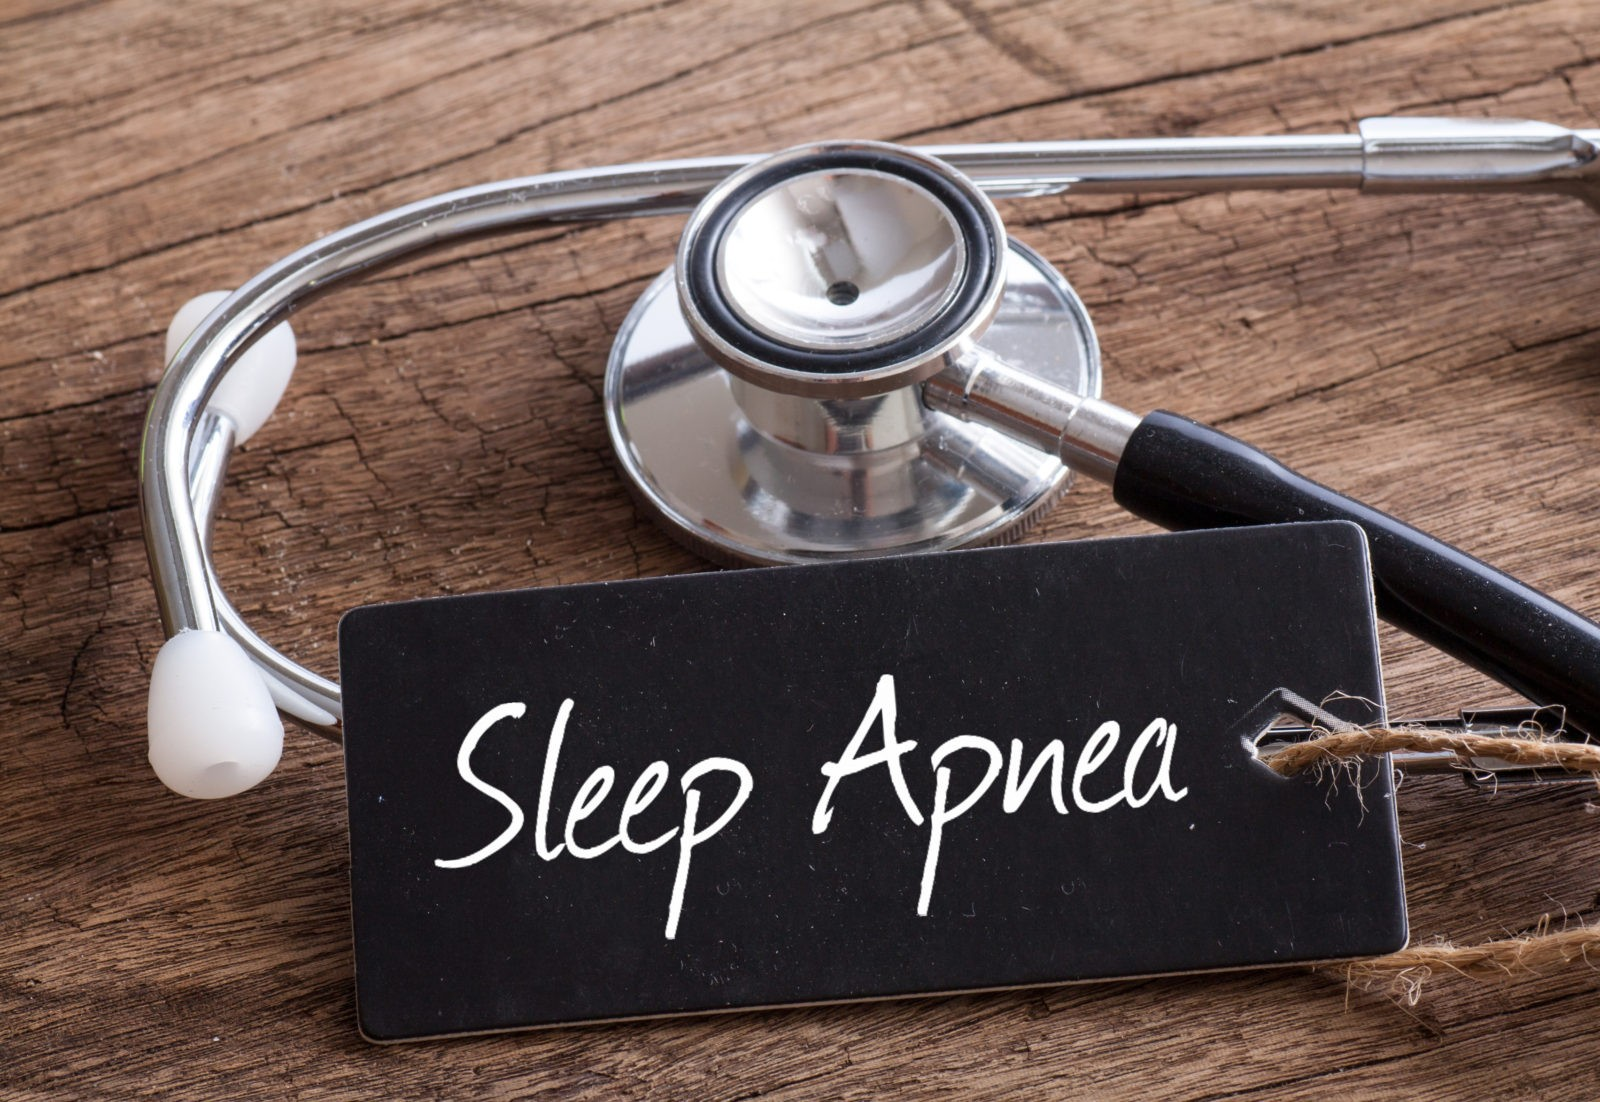 How is Obstructive Sleep Apnea Treated?